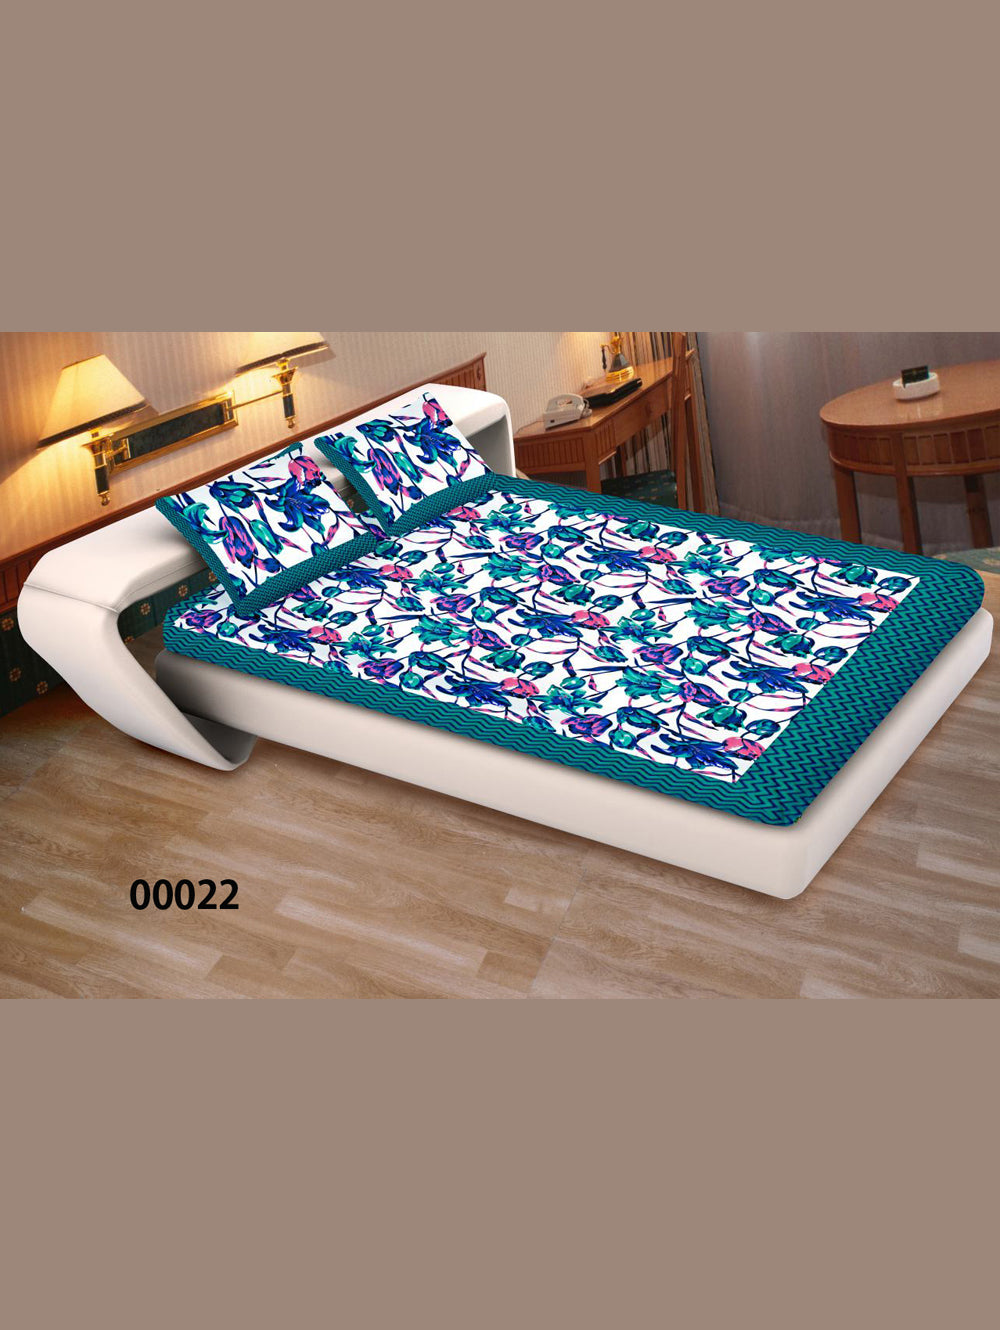 00022SeaGreen and Multicolour Ethnic Cotton Queen Size Floral Bedsheet With 2 Pillow Covers